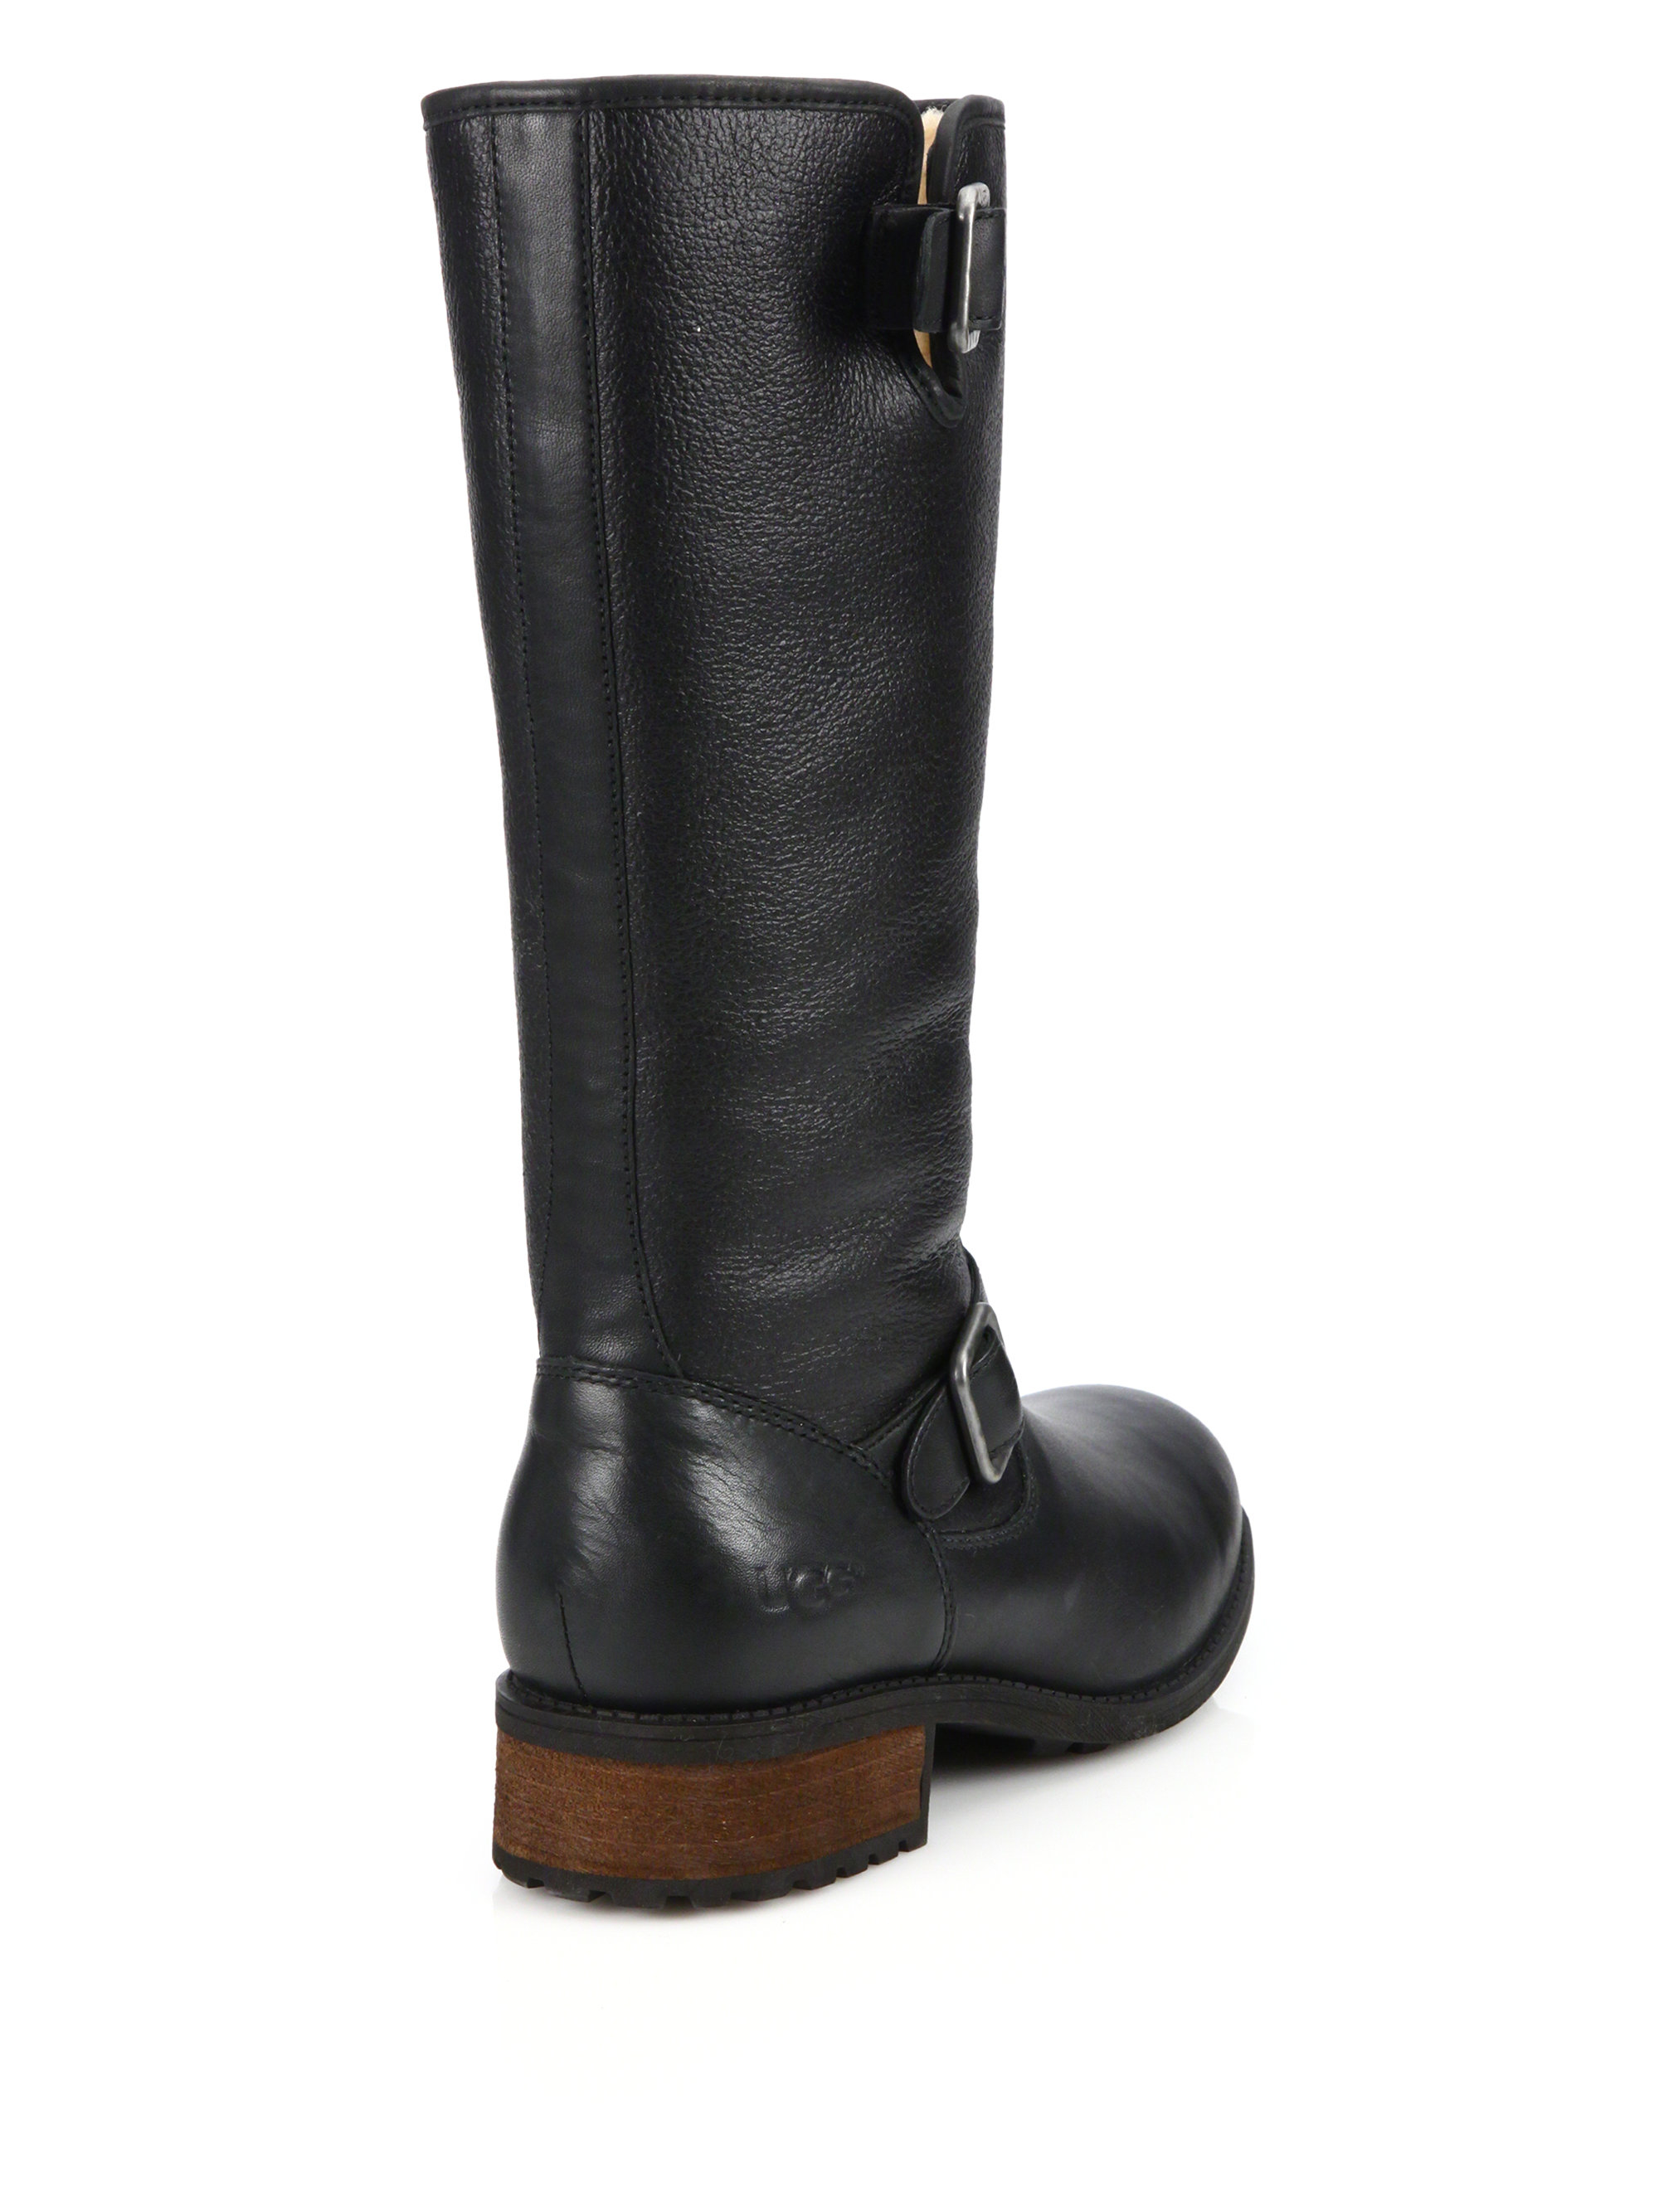 2484ab5adb8 ... new style lyst ugg chancery sheepskin leather boots in black 45605 7ae8d